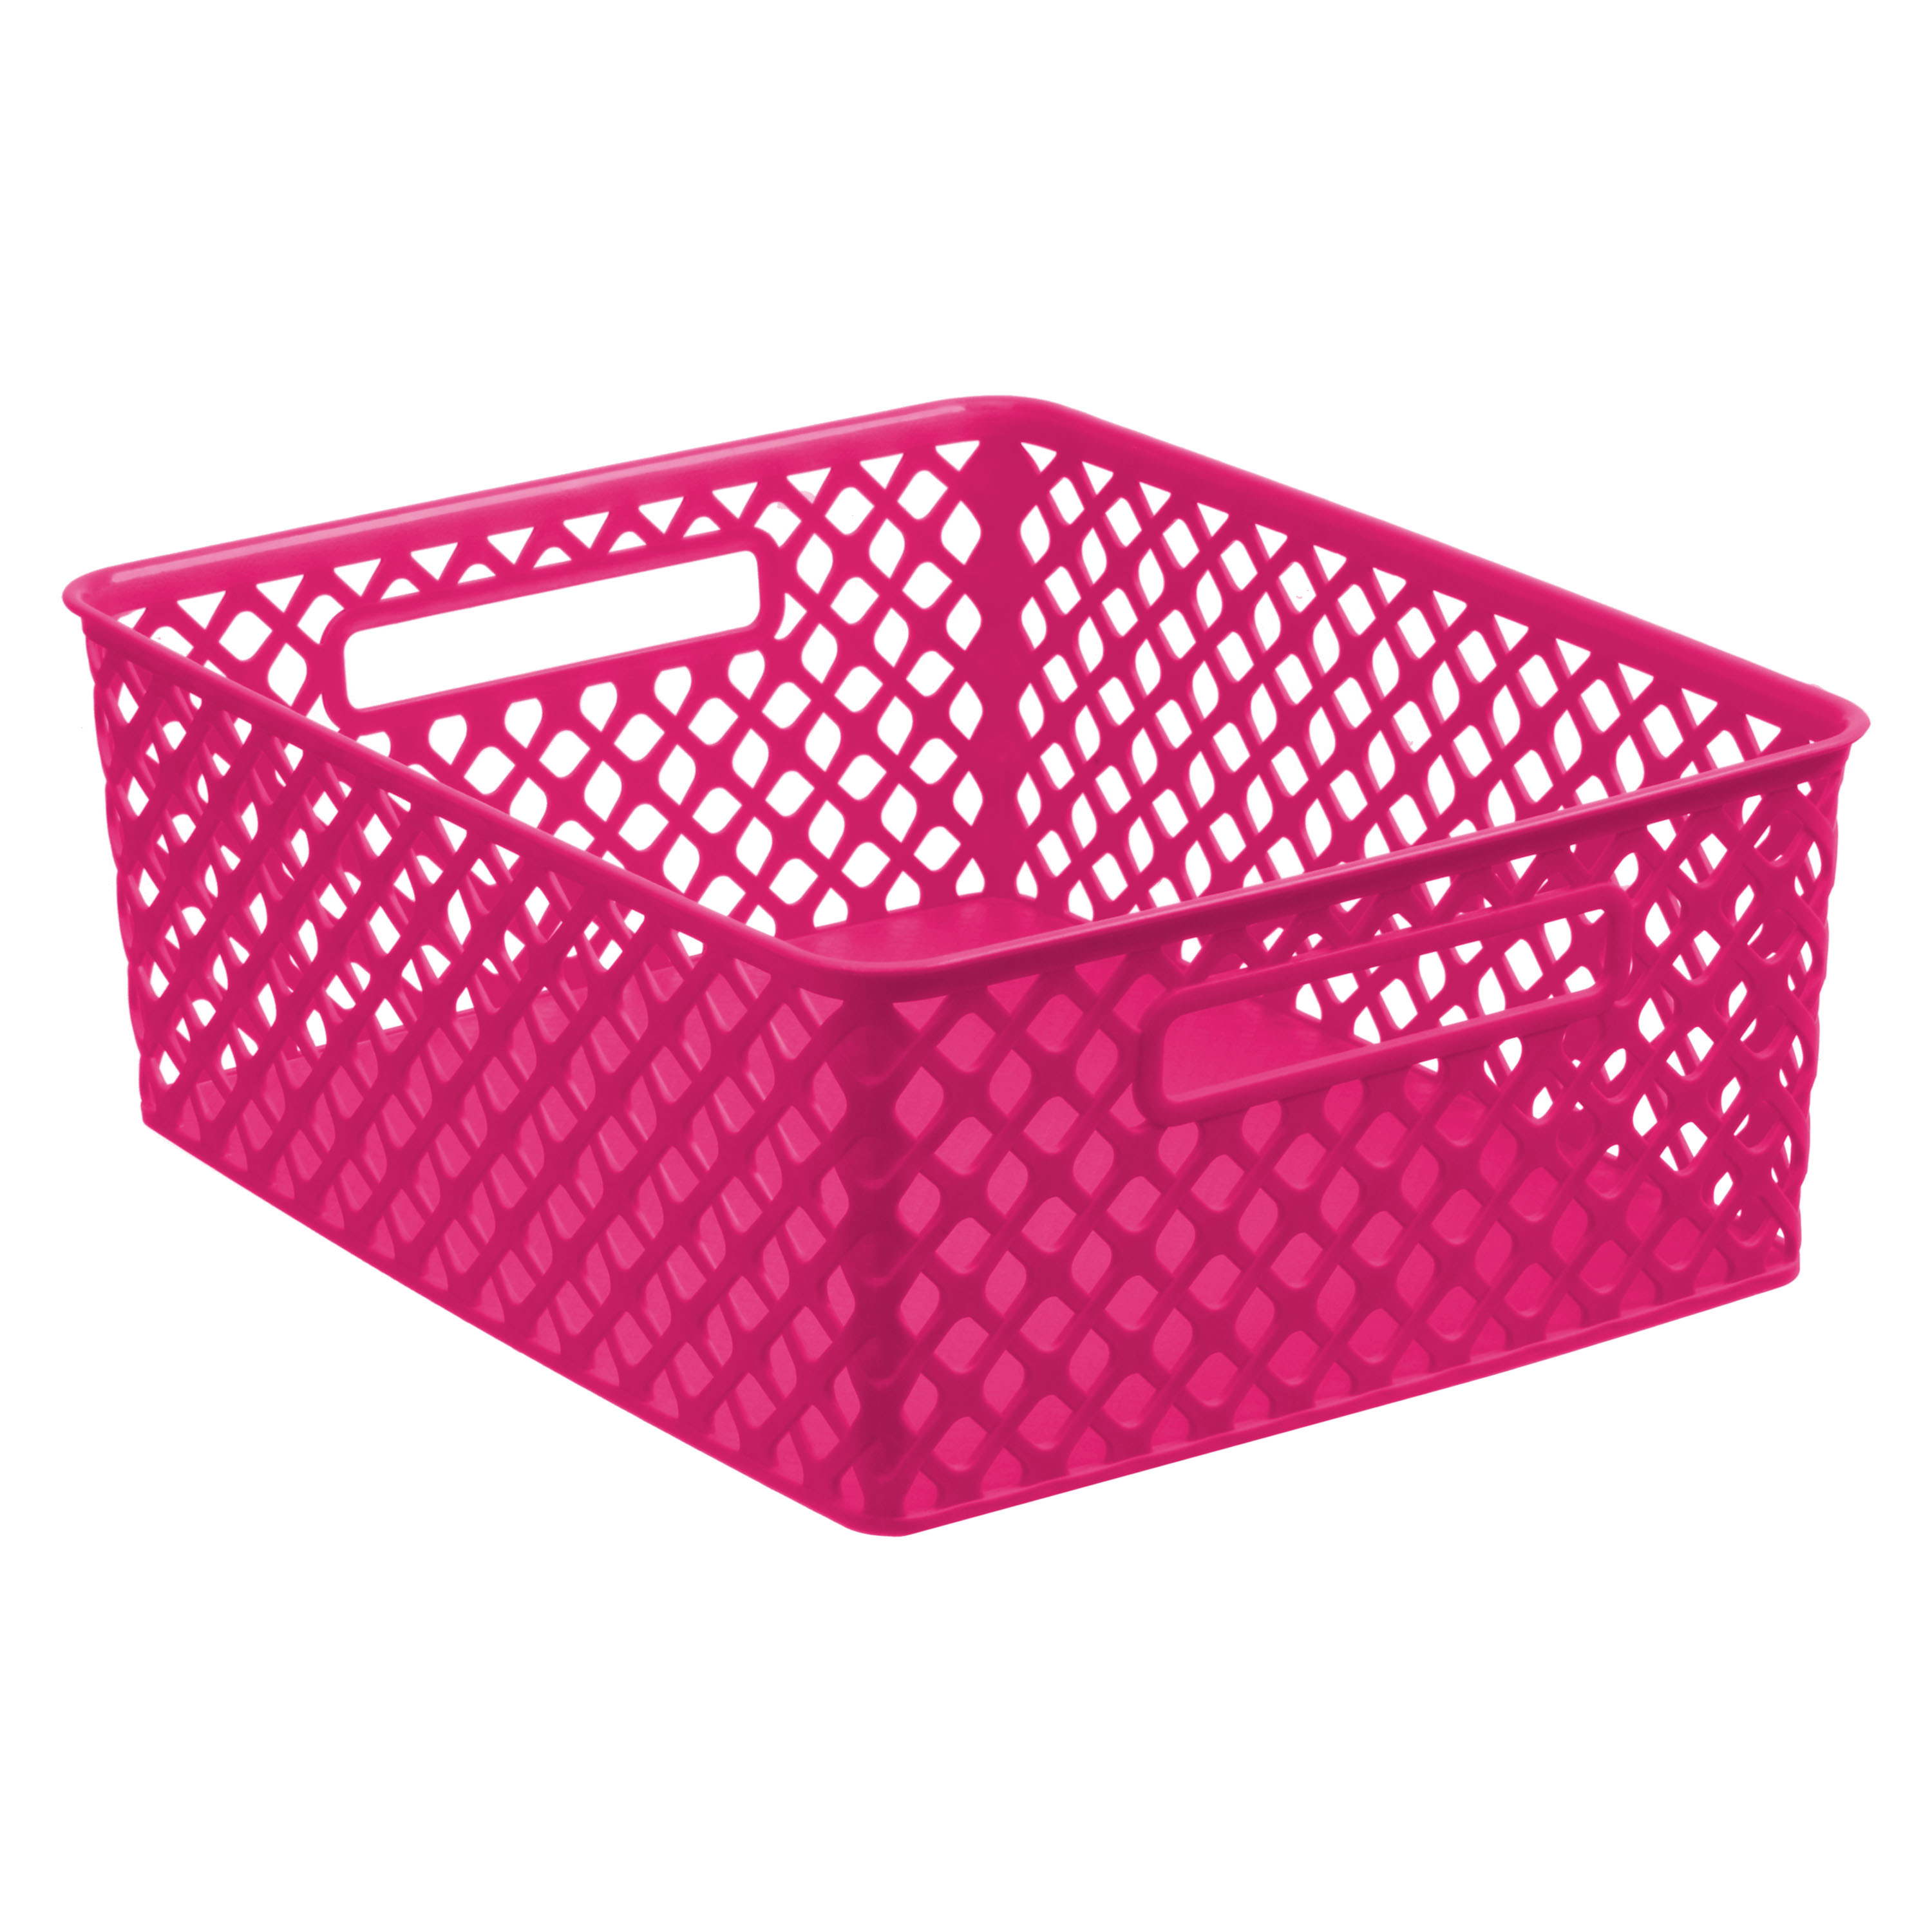 Mainstays Medium Deco Basket - Pink